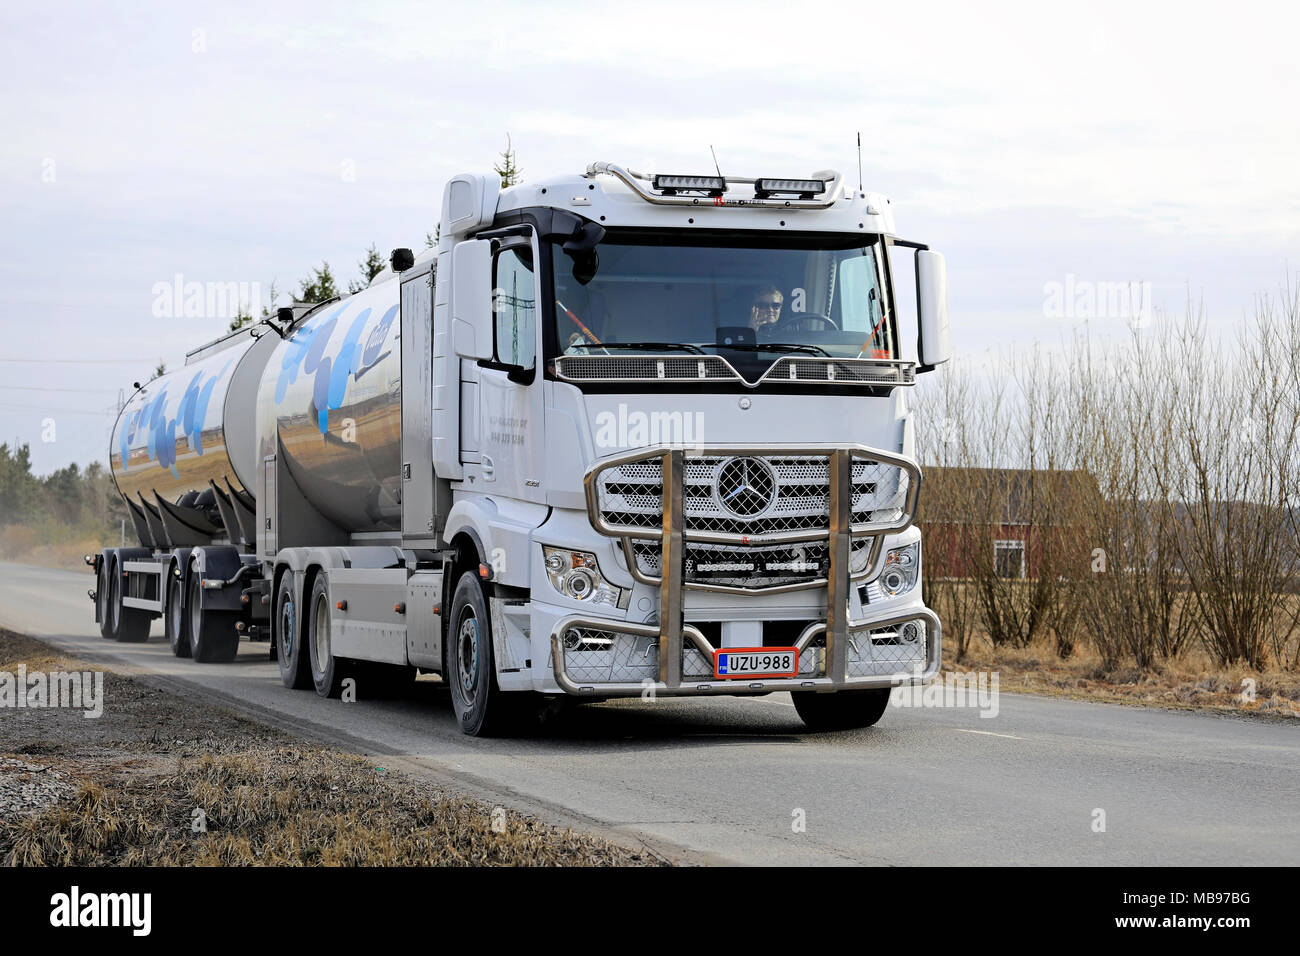 SALO, FINLAND - APRIL 8, 2018: Mercedes-Benz Actros 2551 tank truck of MJJ  Kuljetus Oy transports Valio Milk along road at spring.